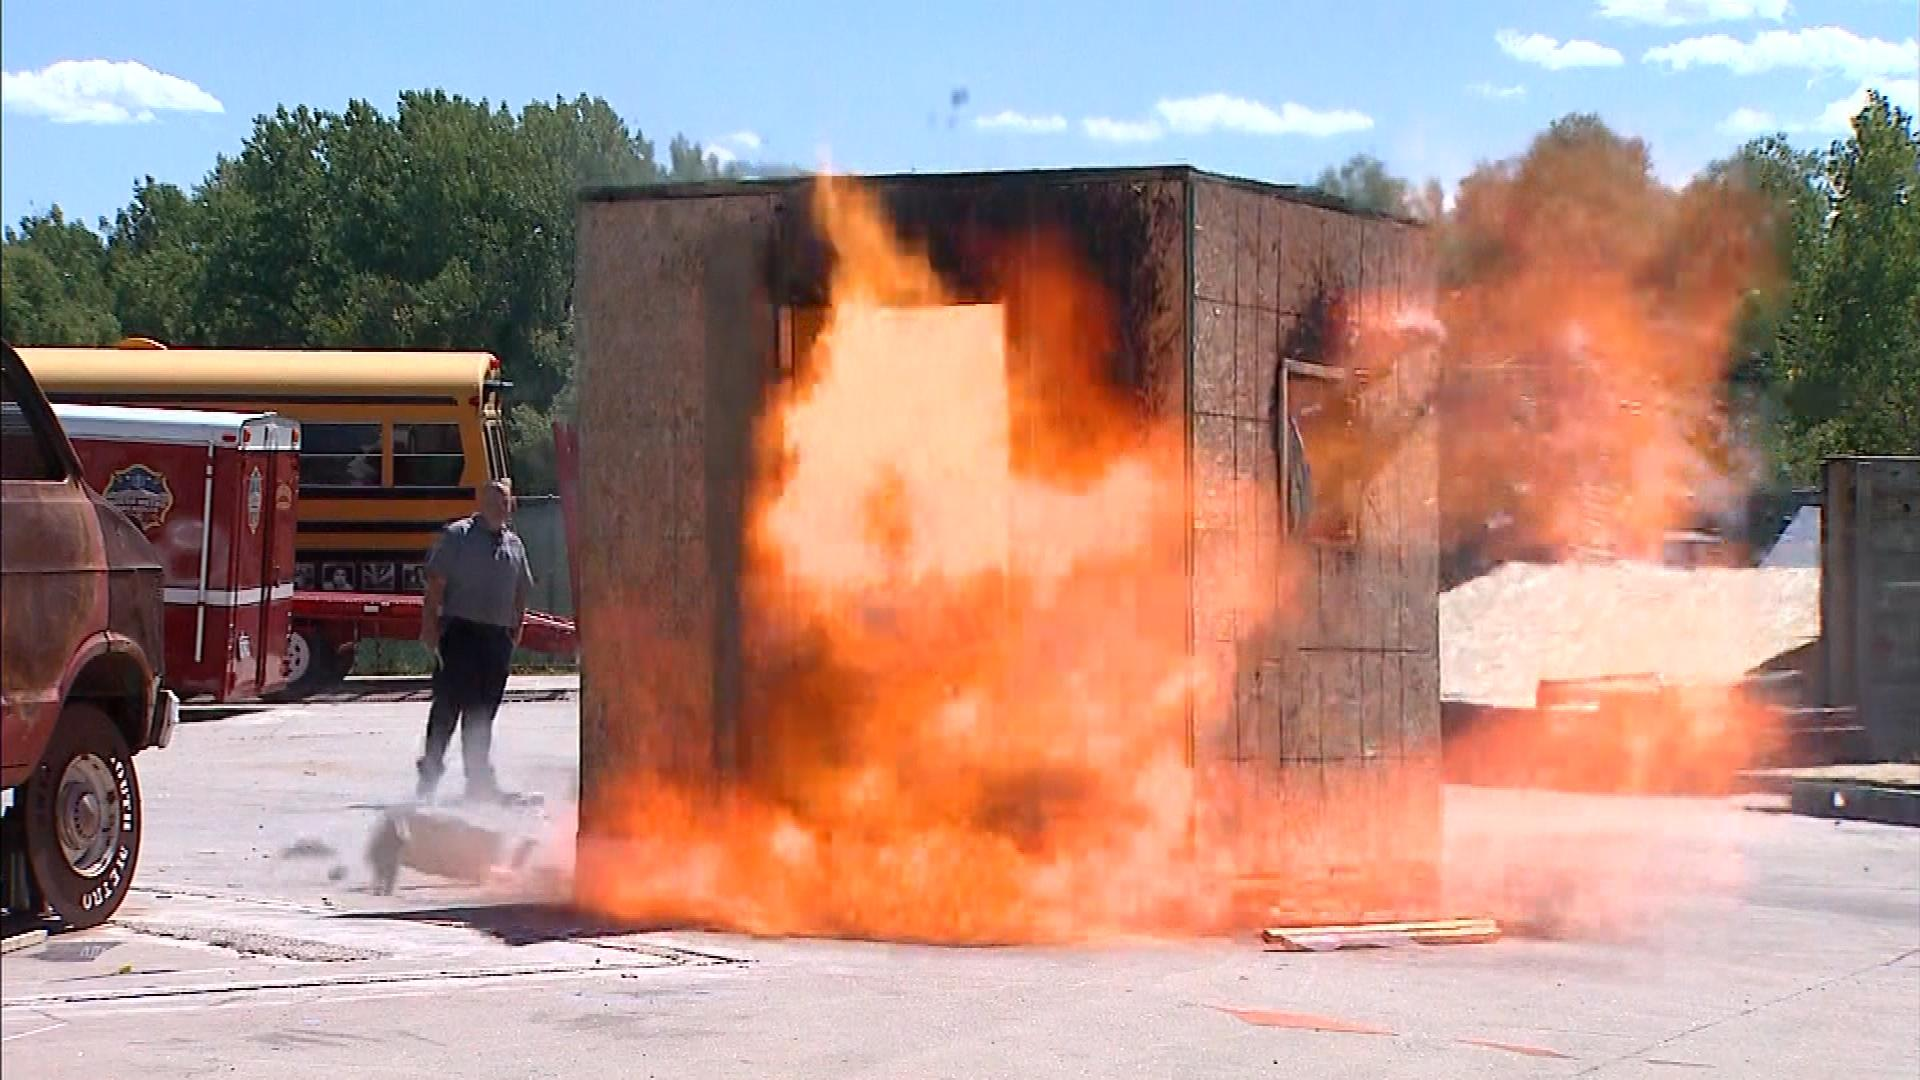 A shack exploding during the demonstration  (credit: CBS)